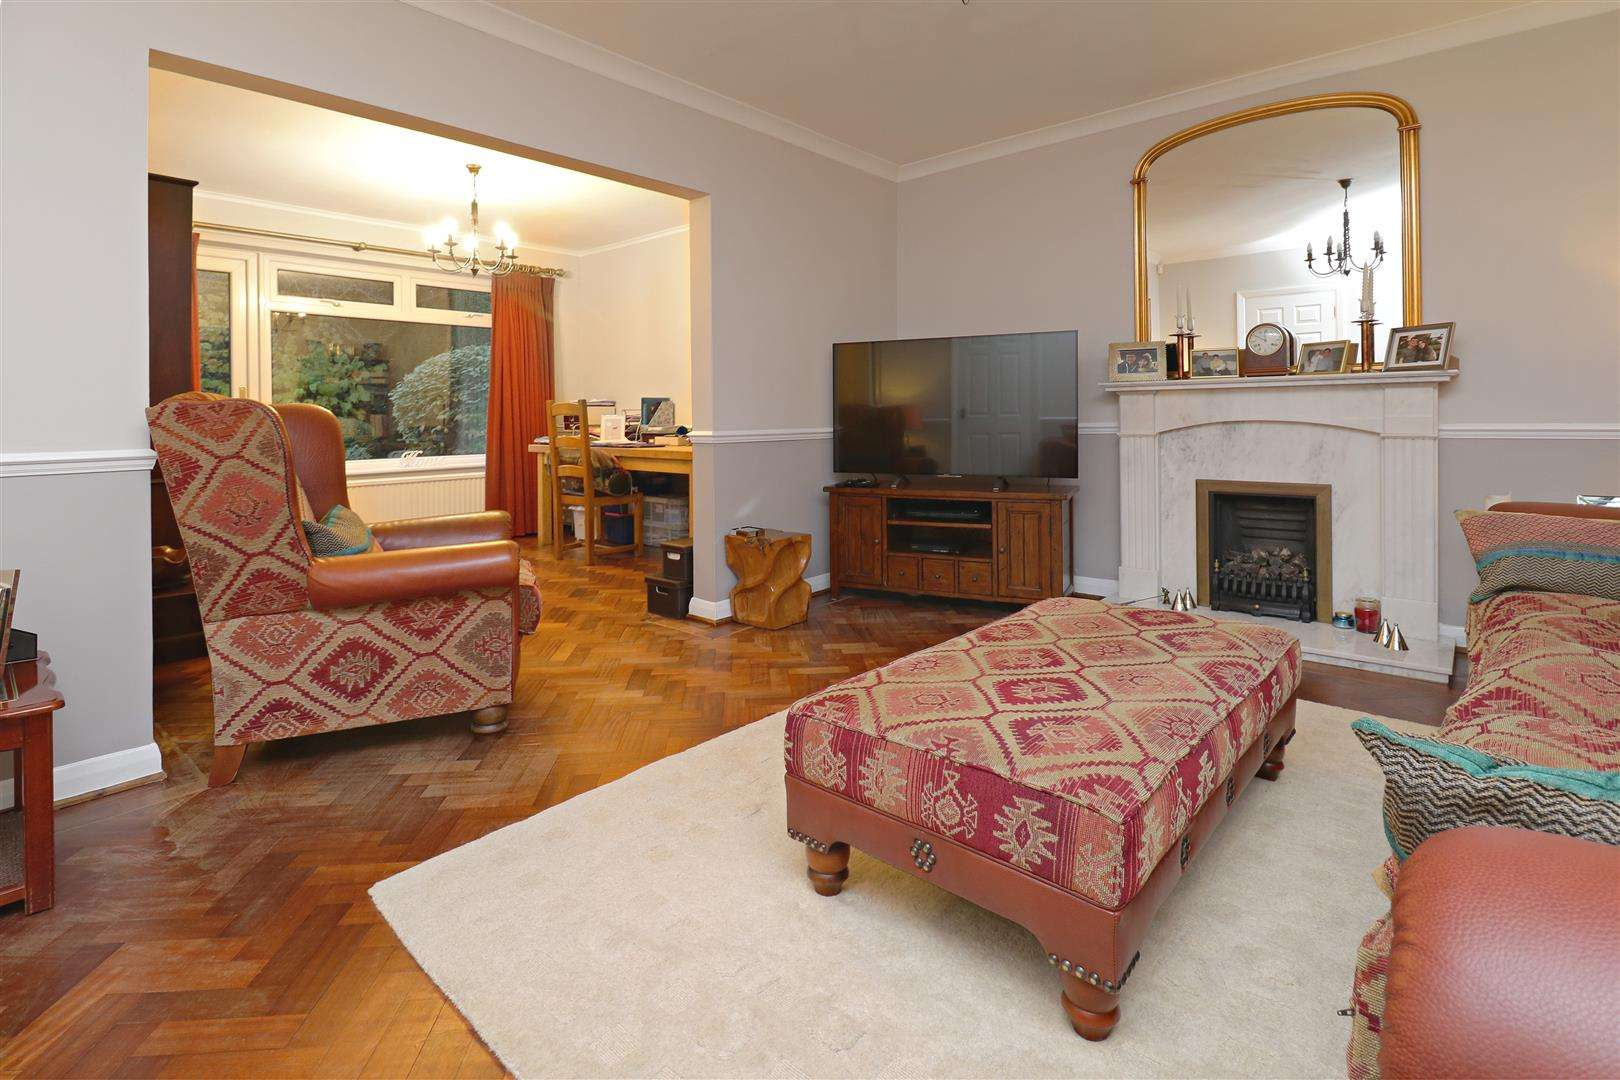 5 bed for sale - (Property Image 1)